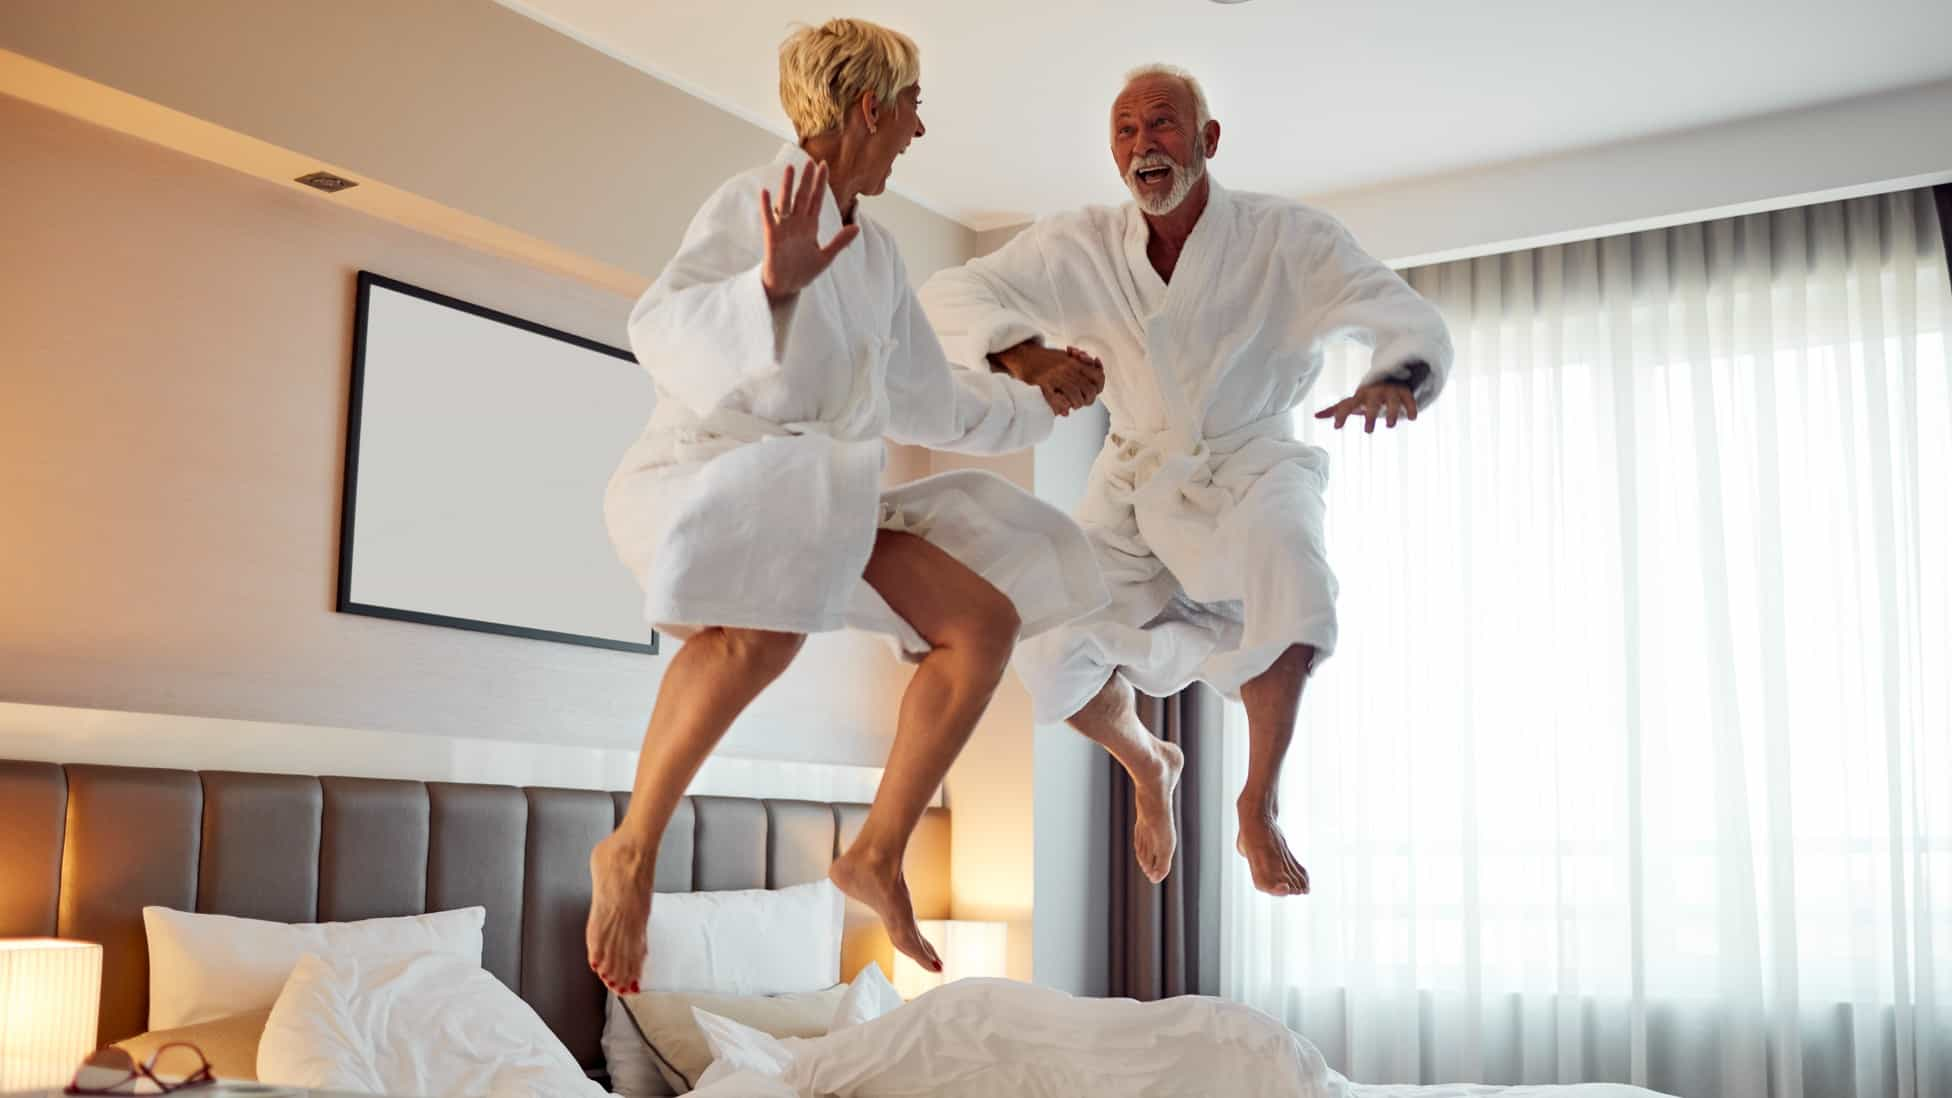 An older couple in white robes jump on their bed with joyous faces, thrilled about the good news.